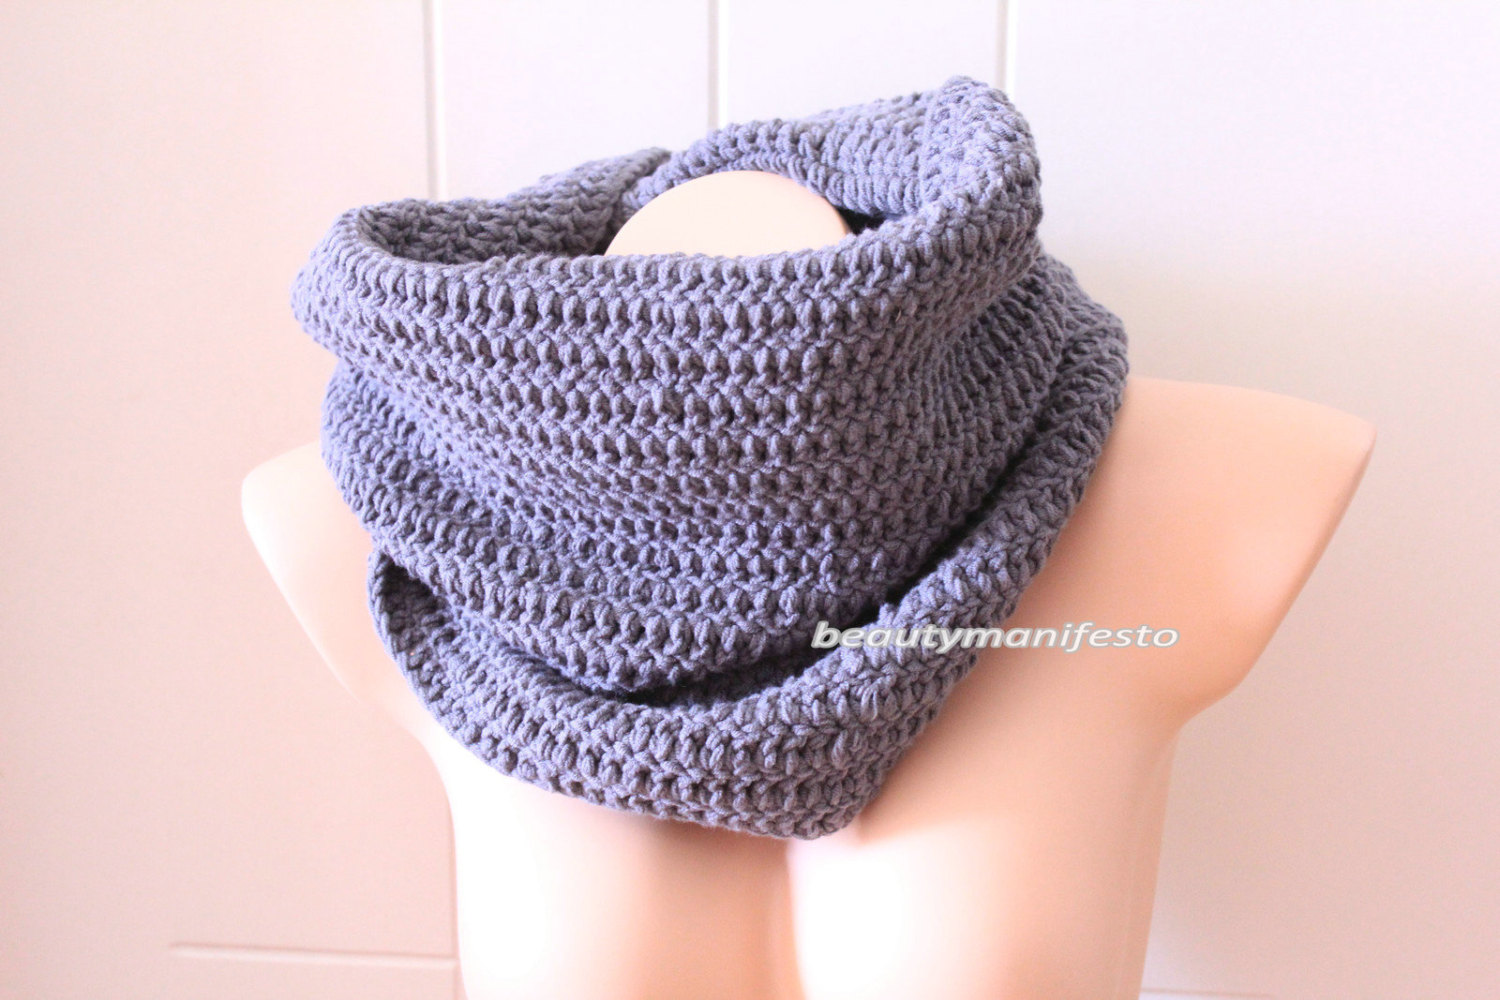 Oversized knit scarf,oversized chunky infinity scarf in grey color,unisex crochet grey infinity scarf,custom orders welcome,free shipping